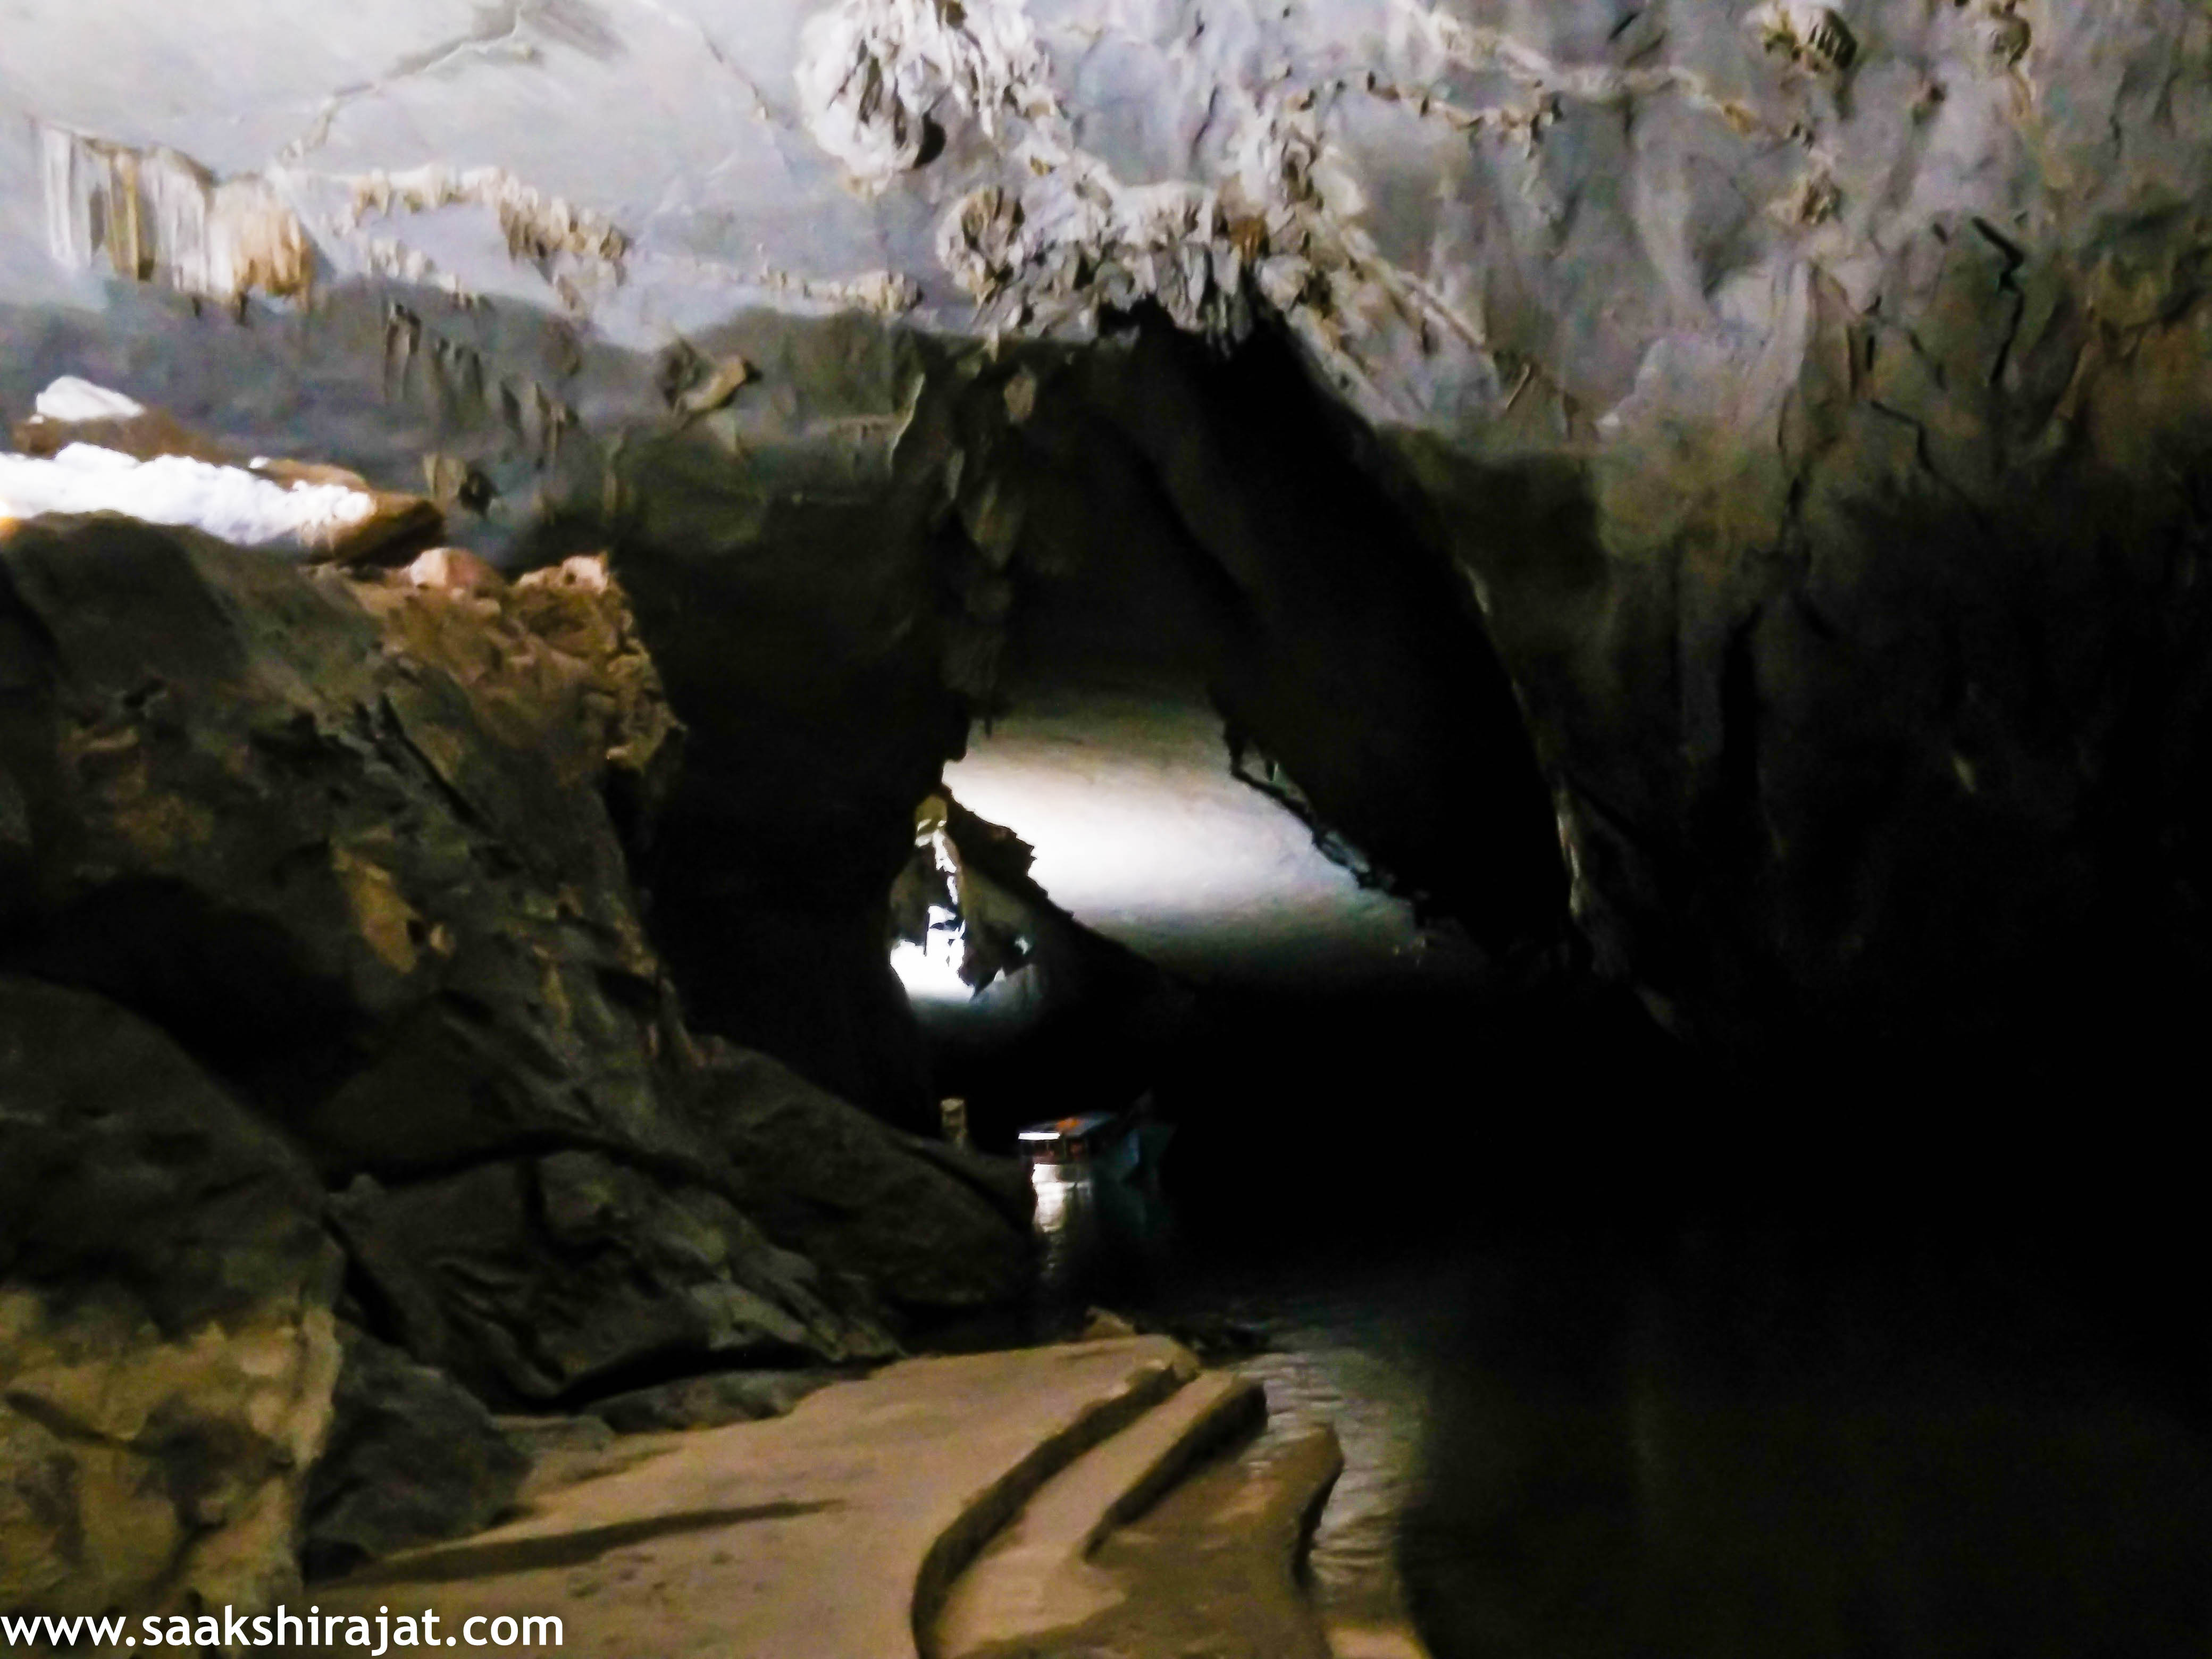 Cave inside cave